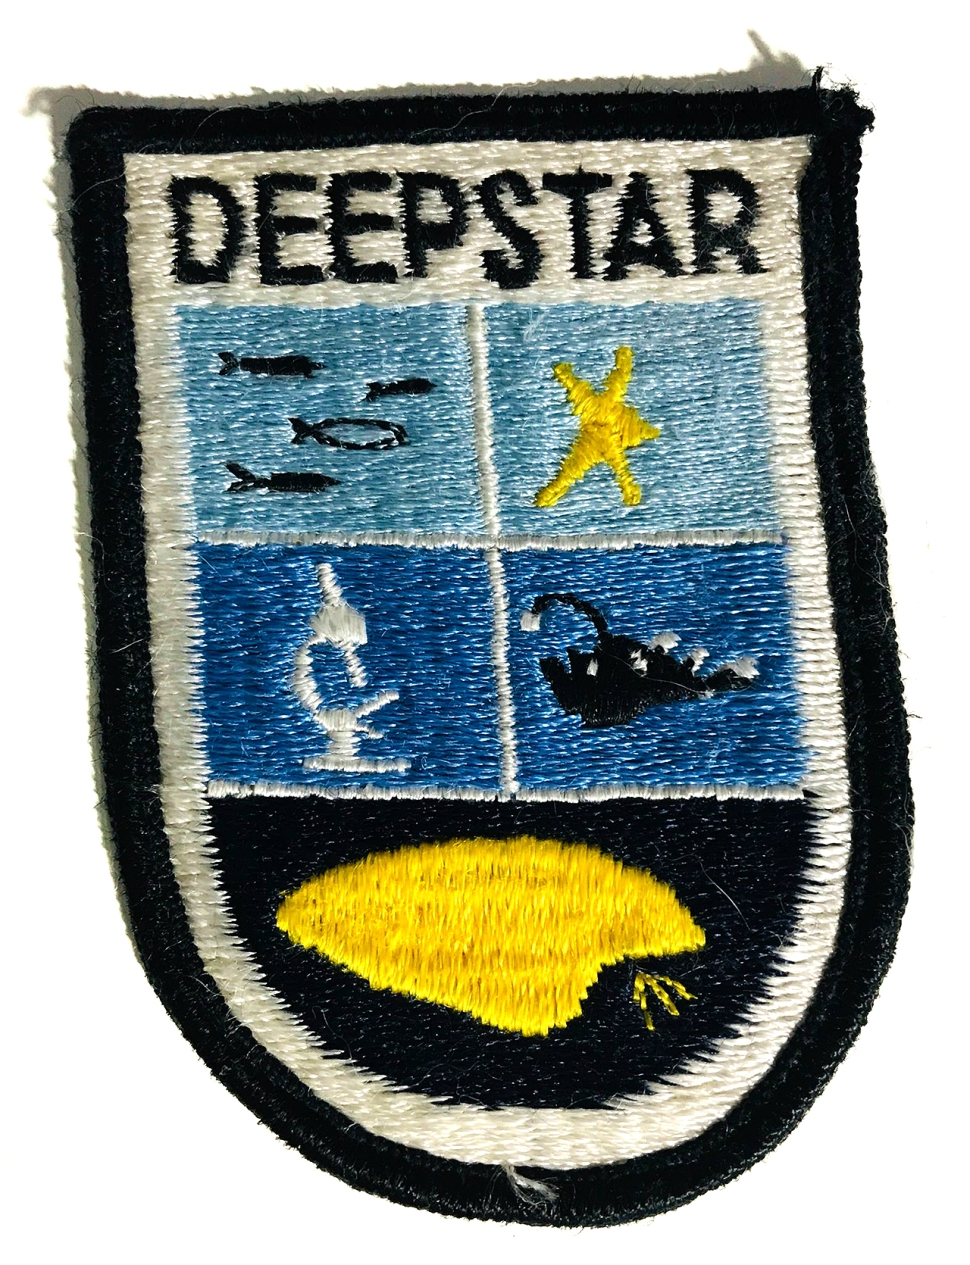 181024-deepstar-4000-fabric-patch